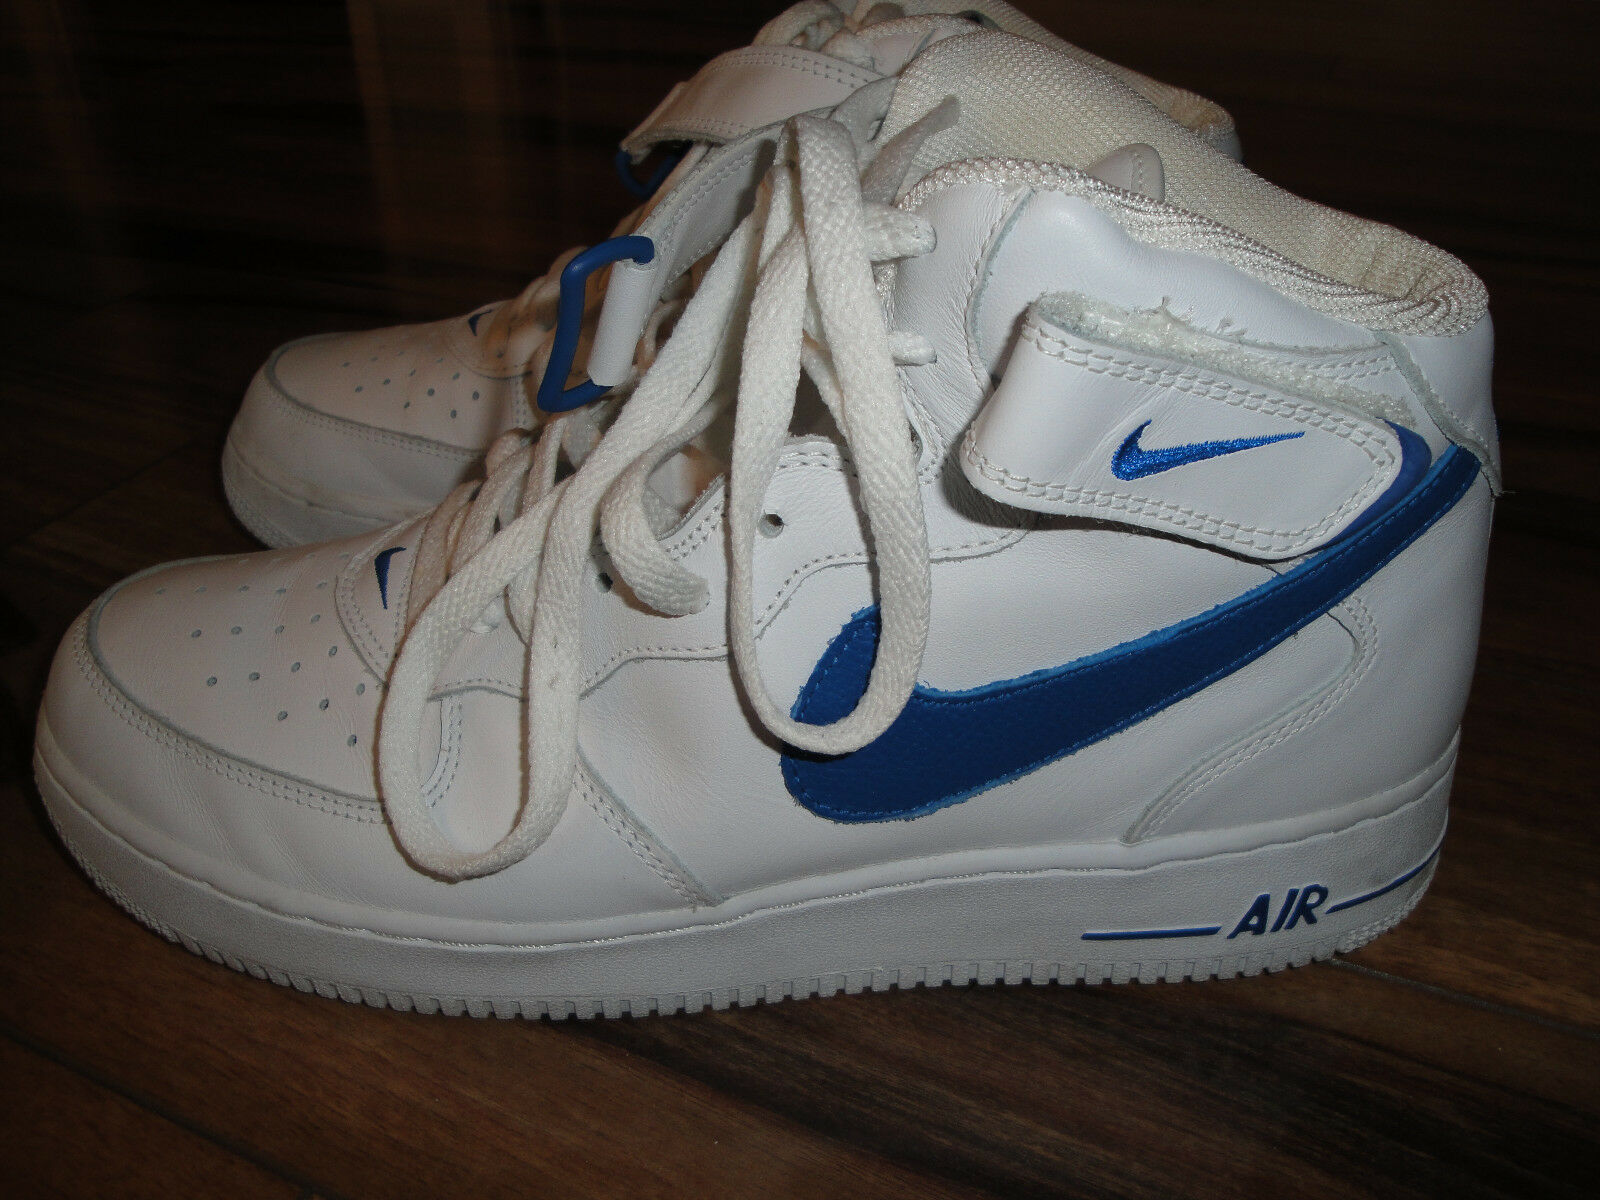 Nike Air Force 1 Mid D-Town Size 11 Style Detroit (D-Town)